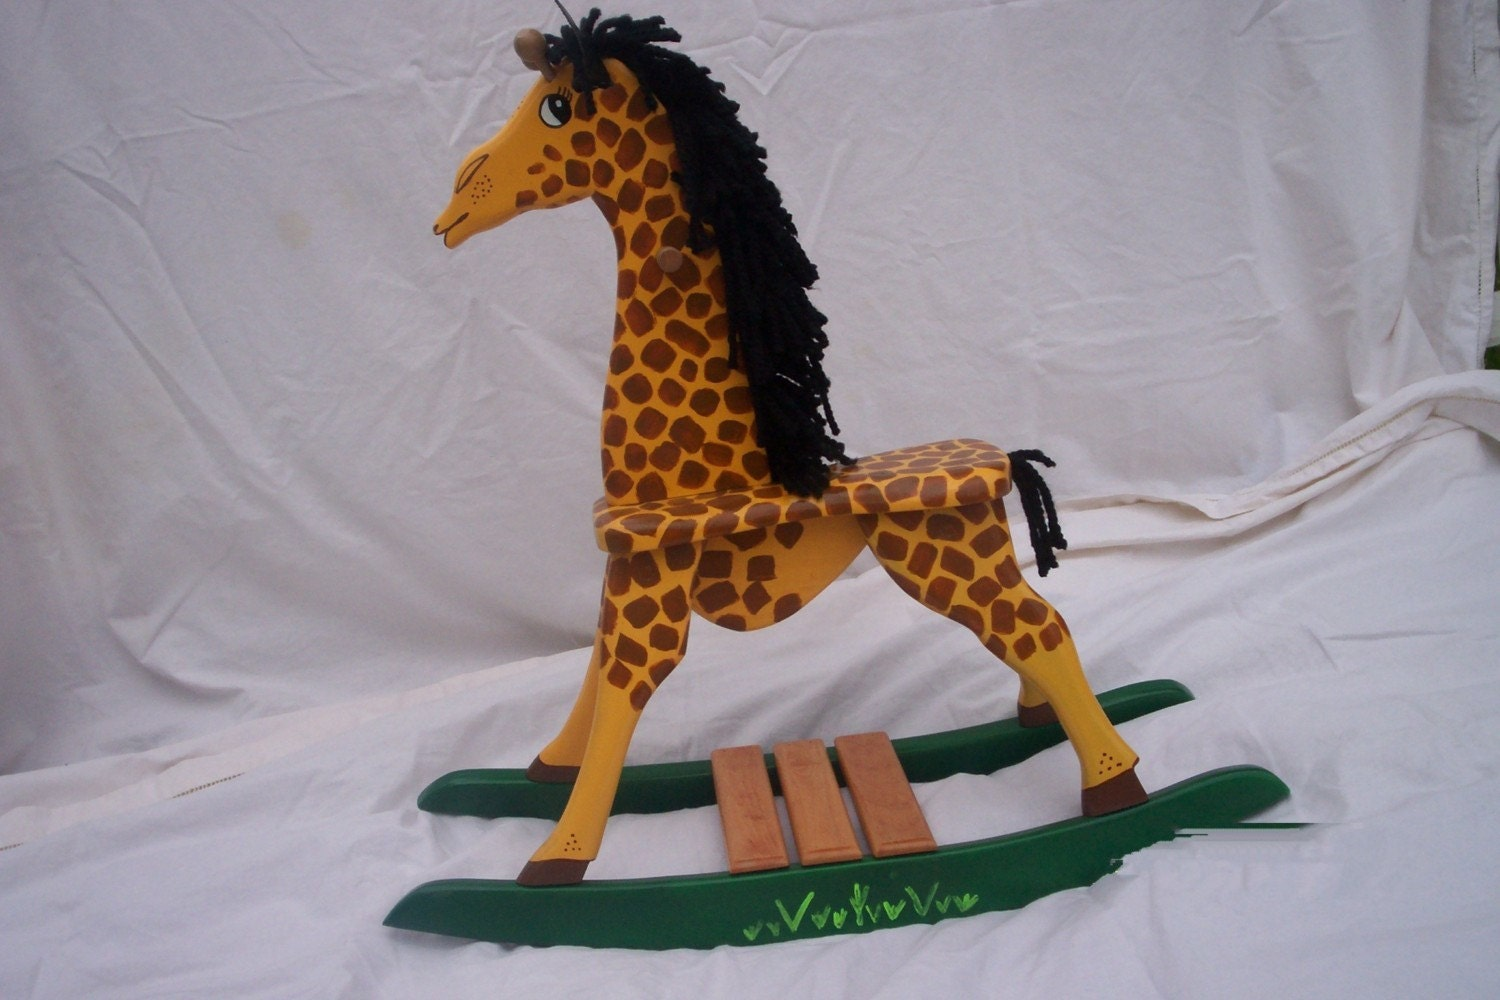 Superb img of wooden rocking horse or giraffe by RMDCreations on Etsy with #A66C25 color and 1500x1000 pixels